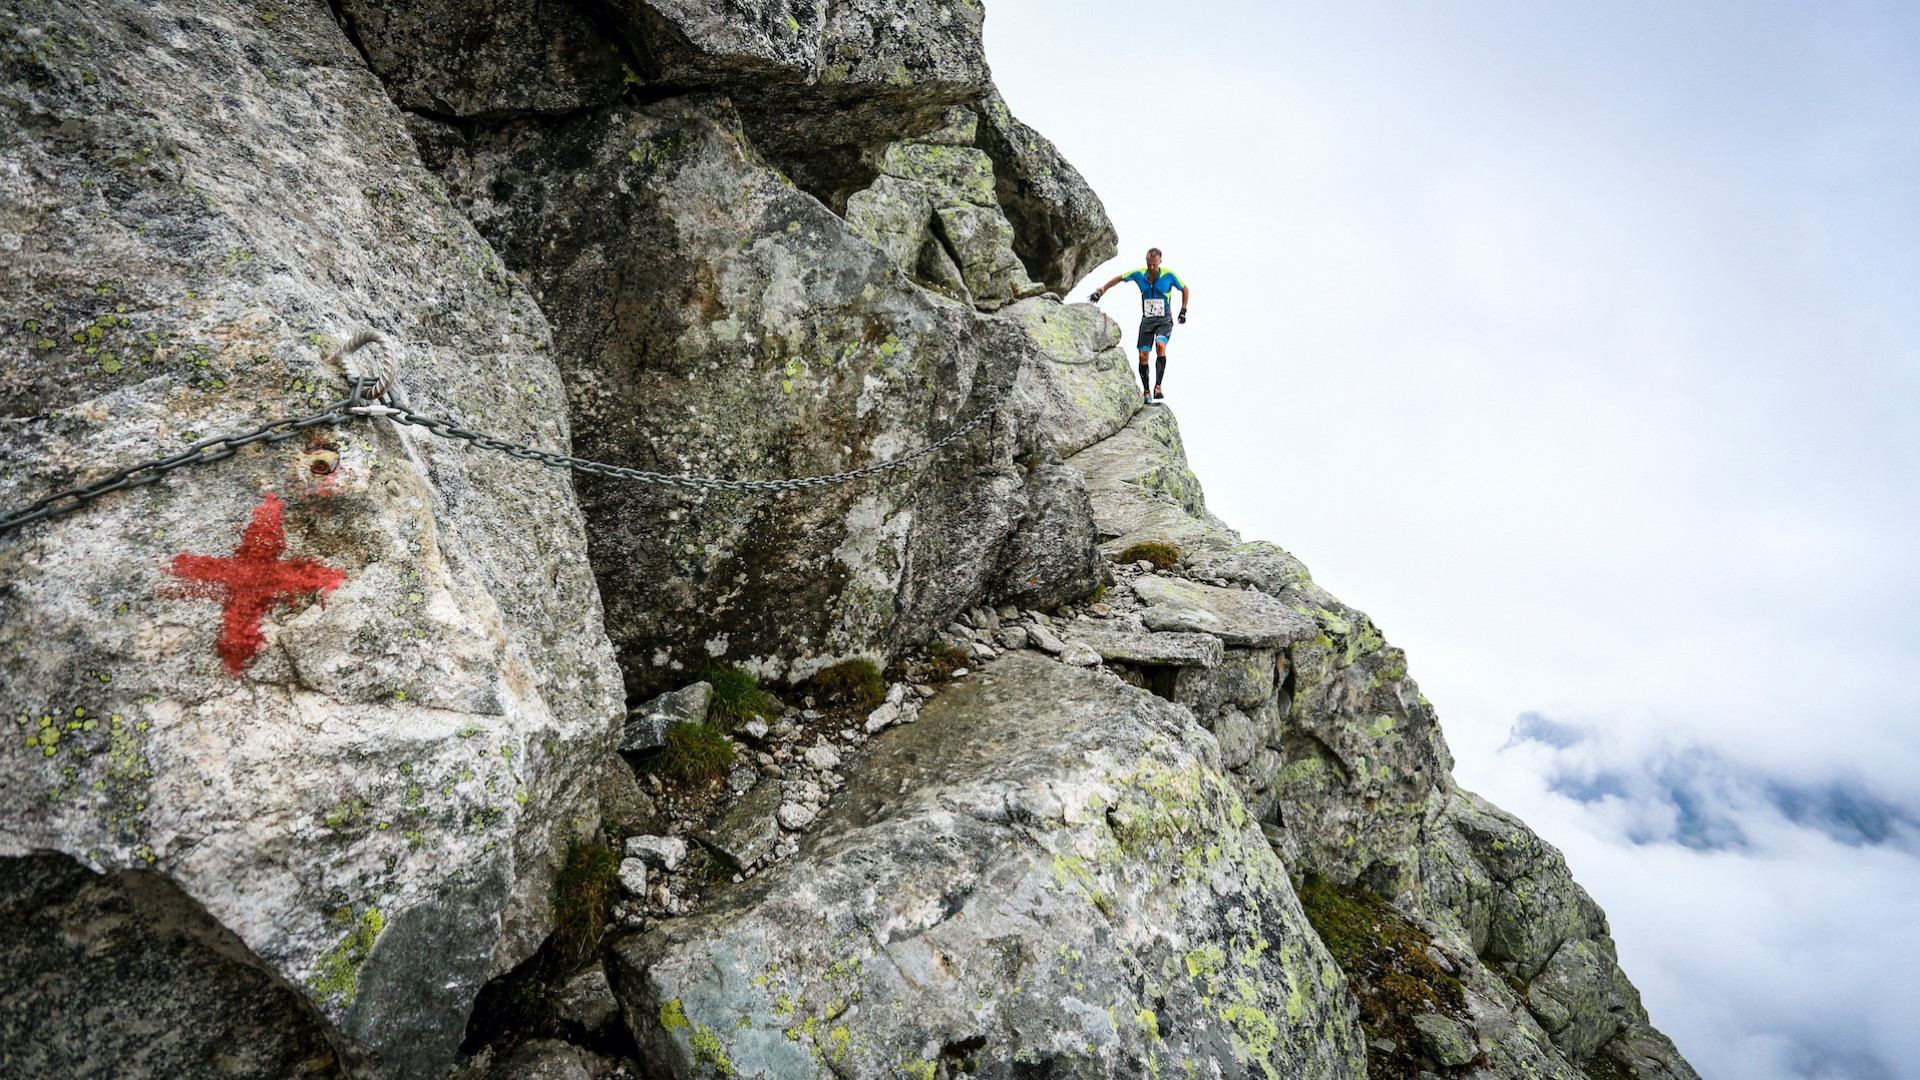 A contestant on the via ferrata at Trofeo Kima